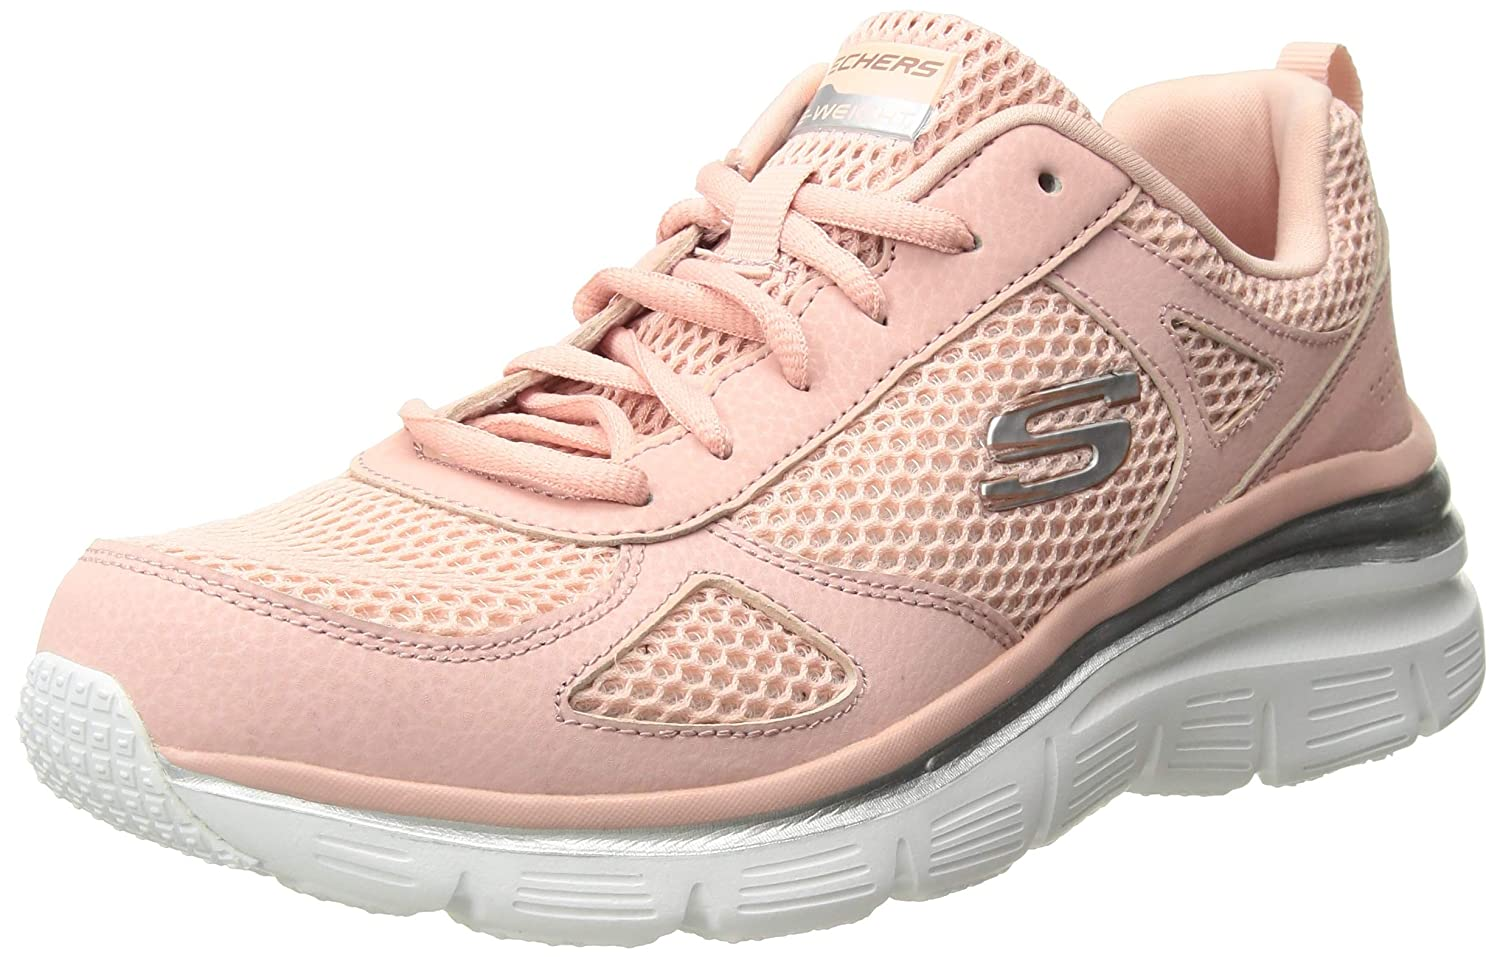 Pnk Skechers Women's Fashion FIT-Perfect Mate